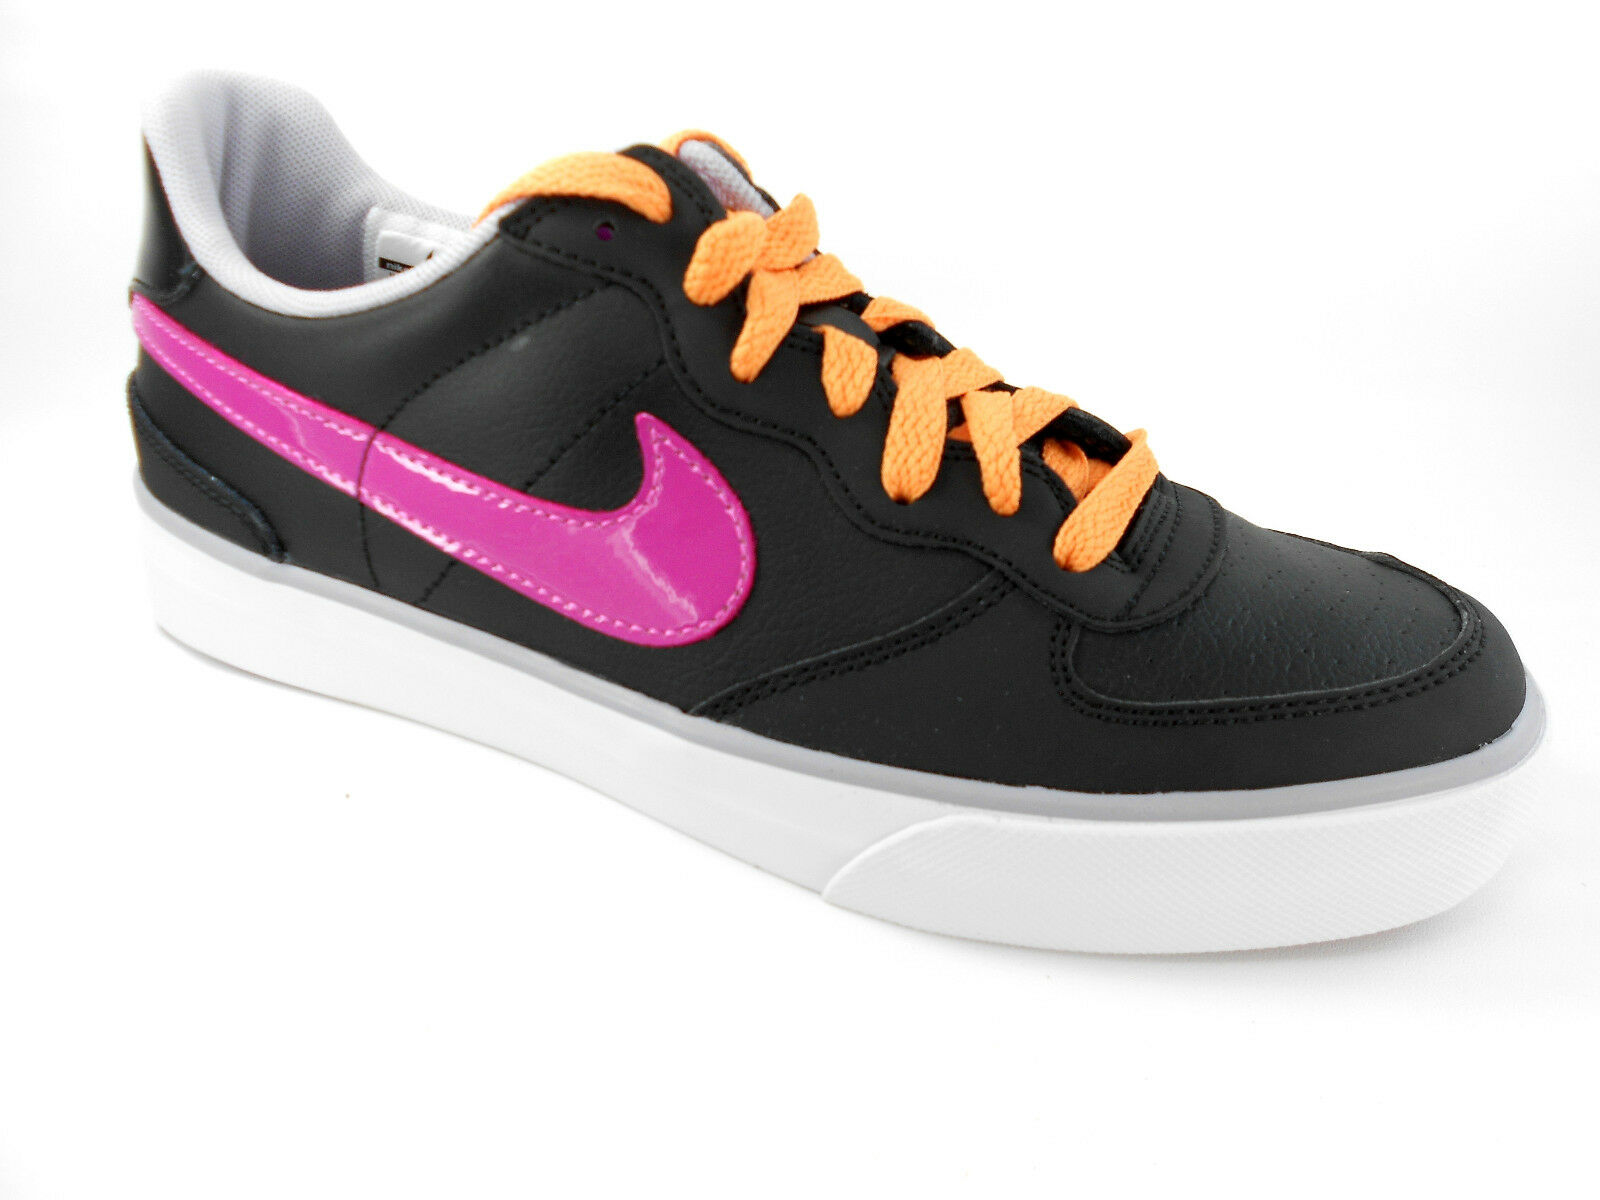 NIKE SWEET ACE 83 WOMEN'S WOMEN'S BLACK/PURPLE SHOES Price reduction Special limited time